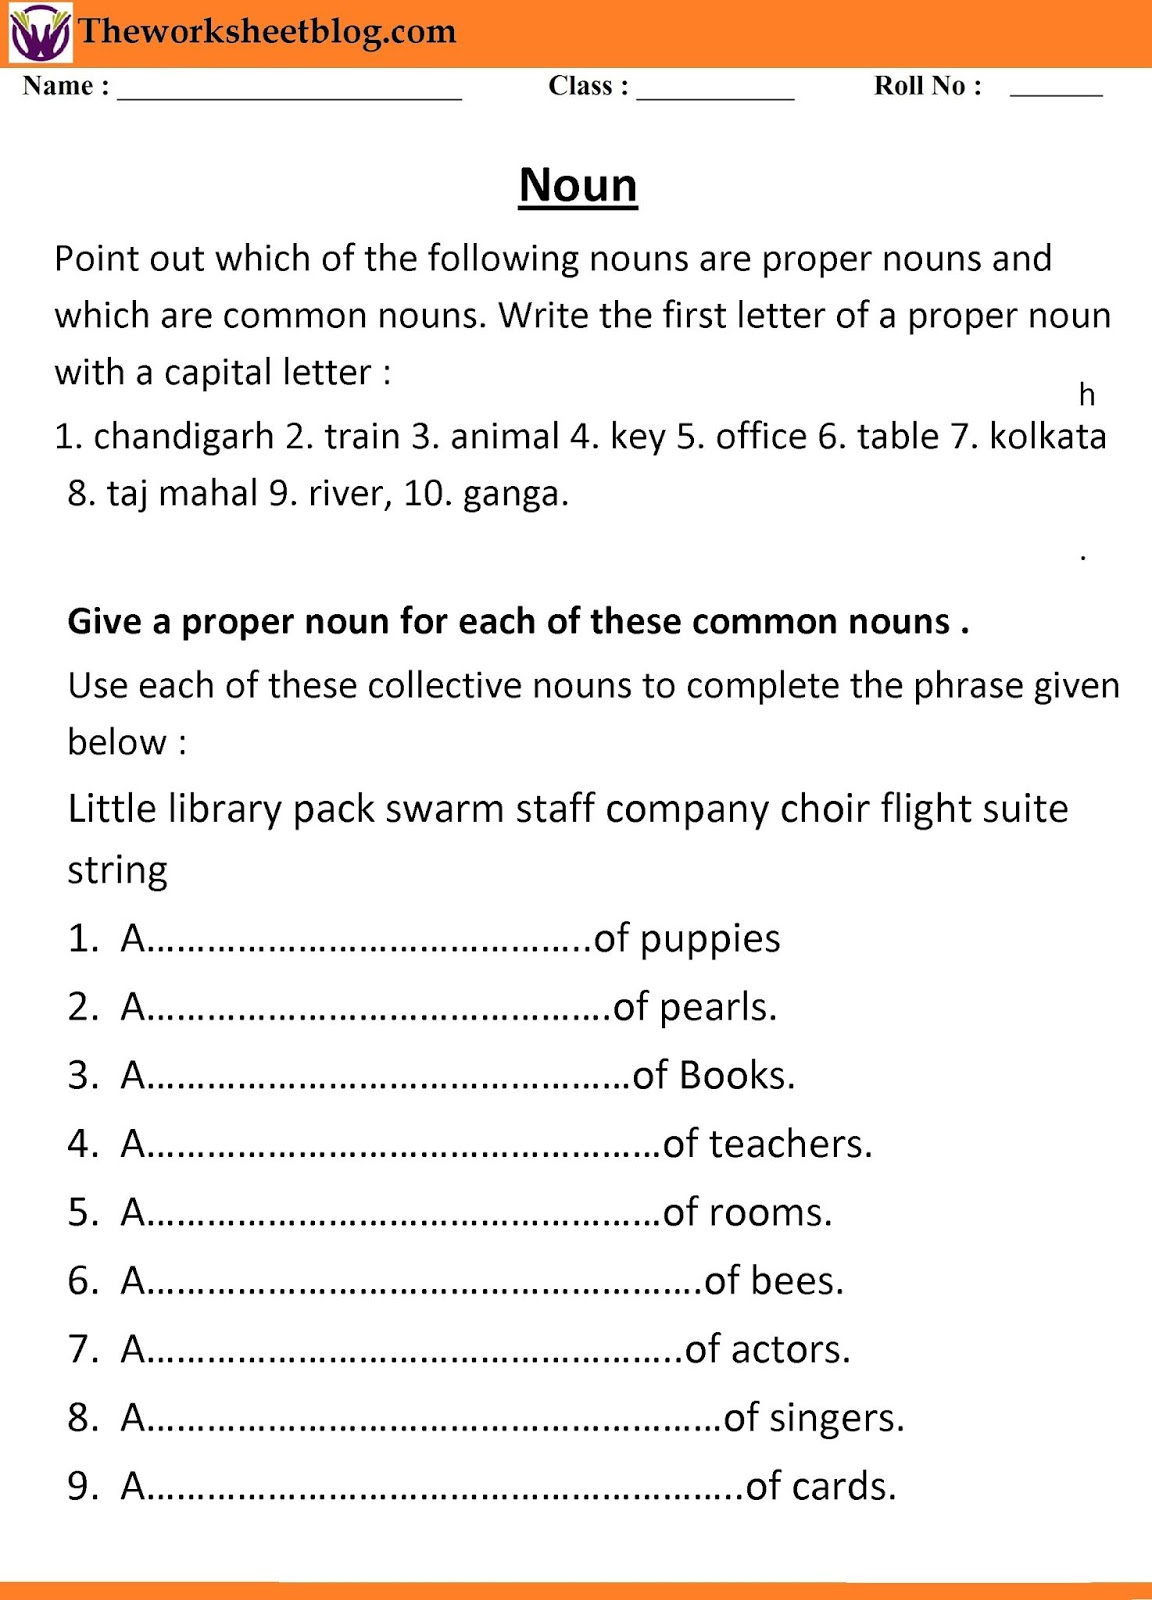 small resolution of Noun worksheets for Grade 1 and 2. - Theworksheetsblog